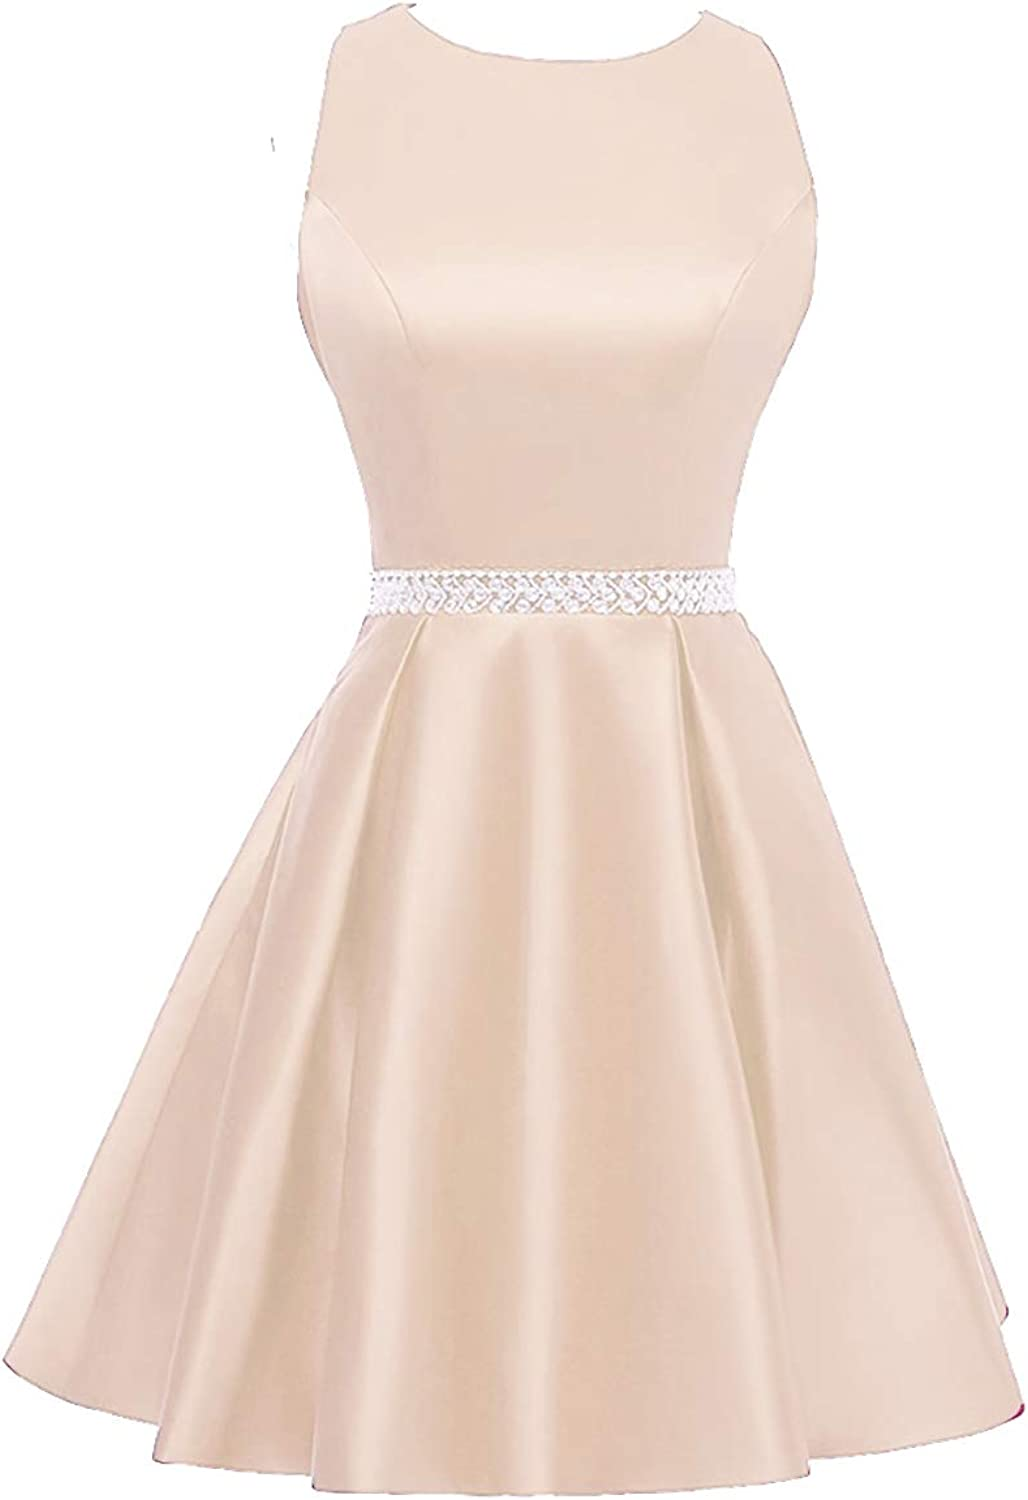 Beaded Homecoming Dresses Short Satin Cocktail Prom Dress Party Formal Gowns